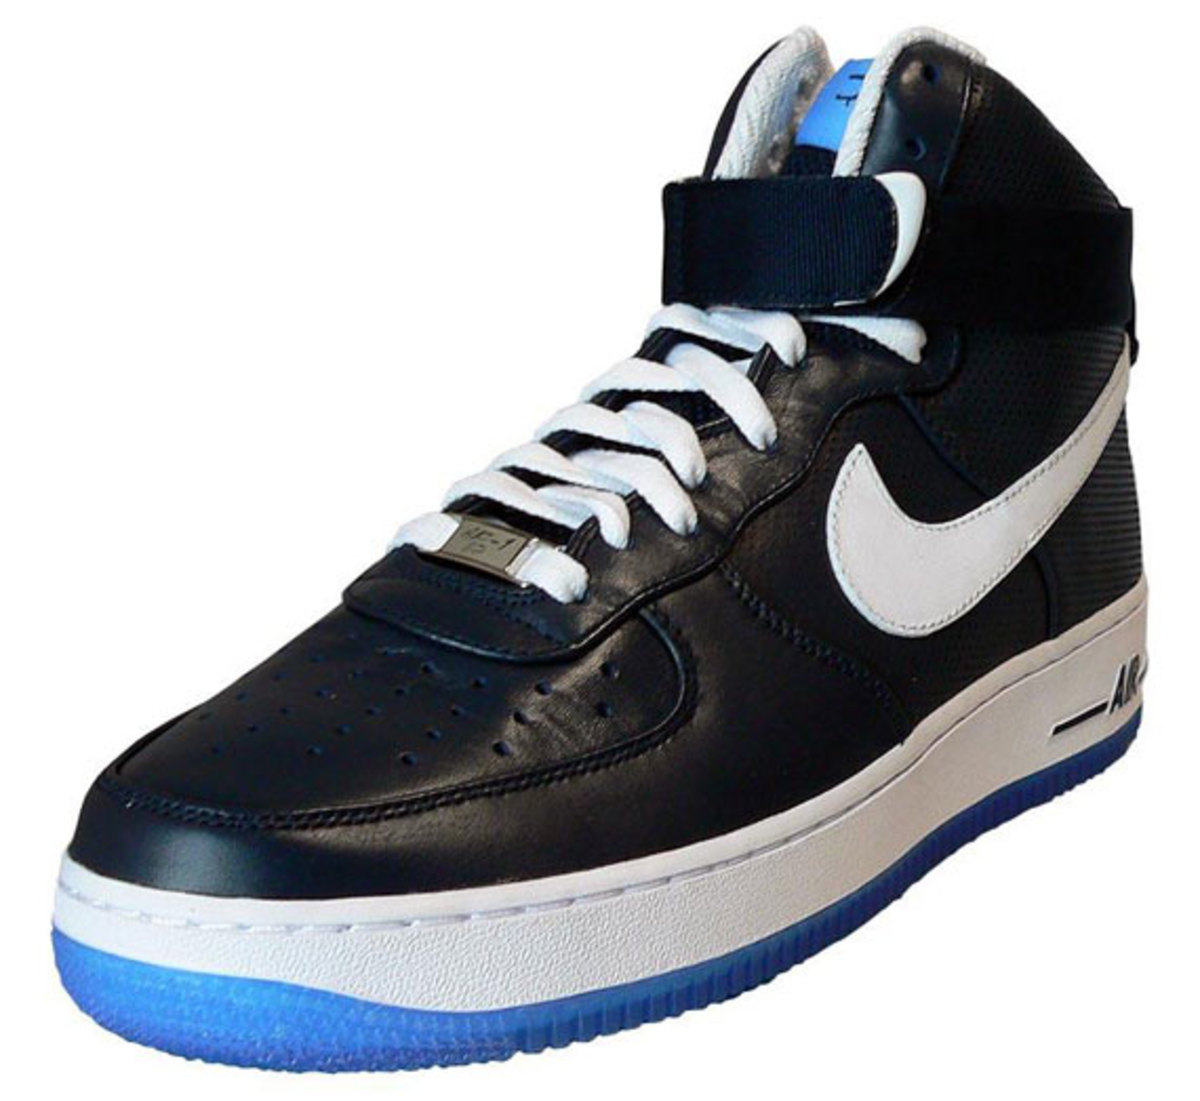 56d605f7f Nike x FUTURA - Air Force 1 High + Low - NY Yankees Pack - Freshness Mag